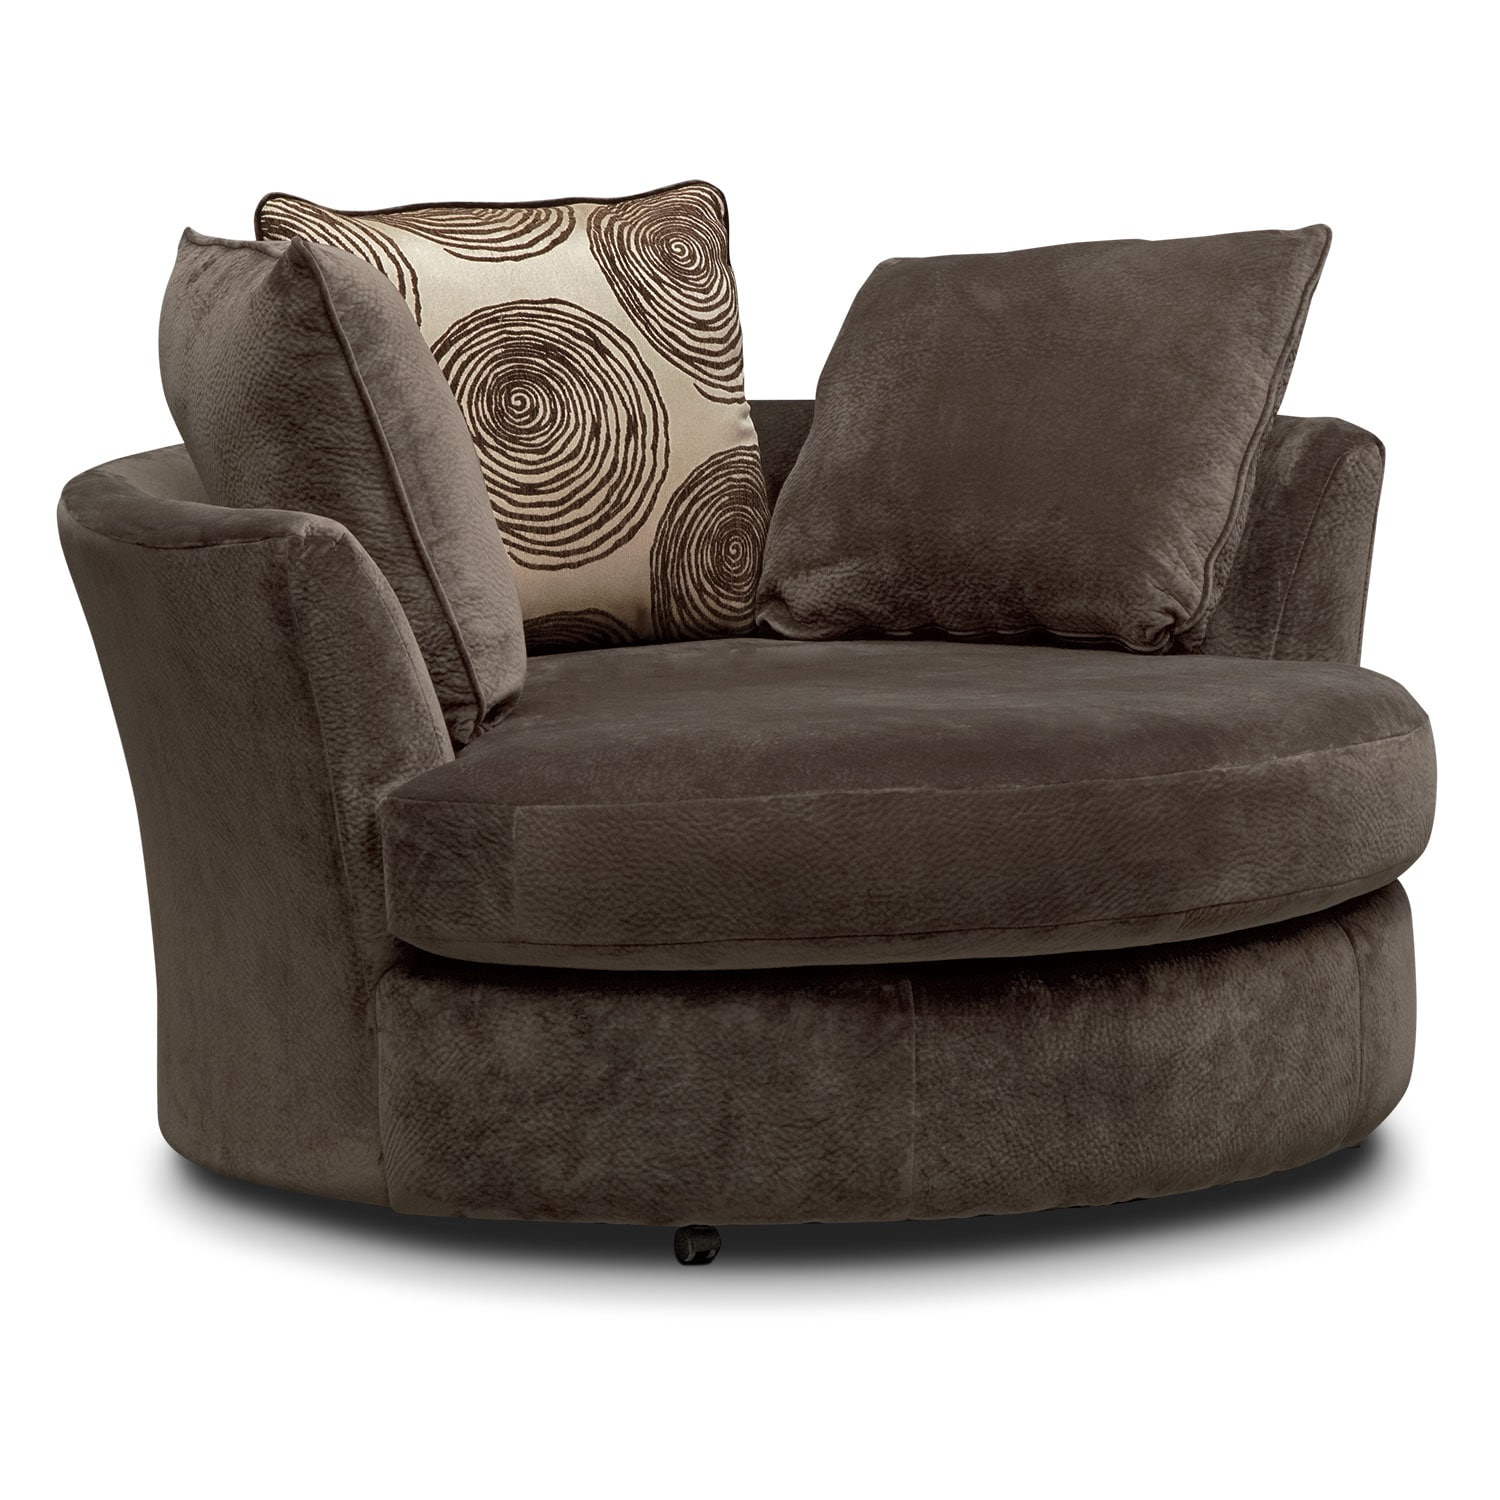 Cordelle Swivel Chair Chocolate American Signature